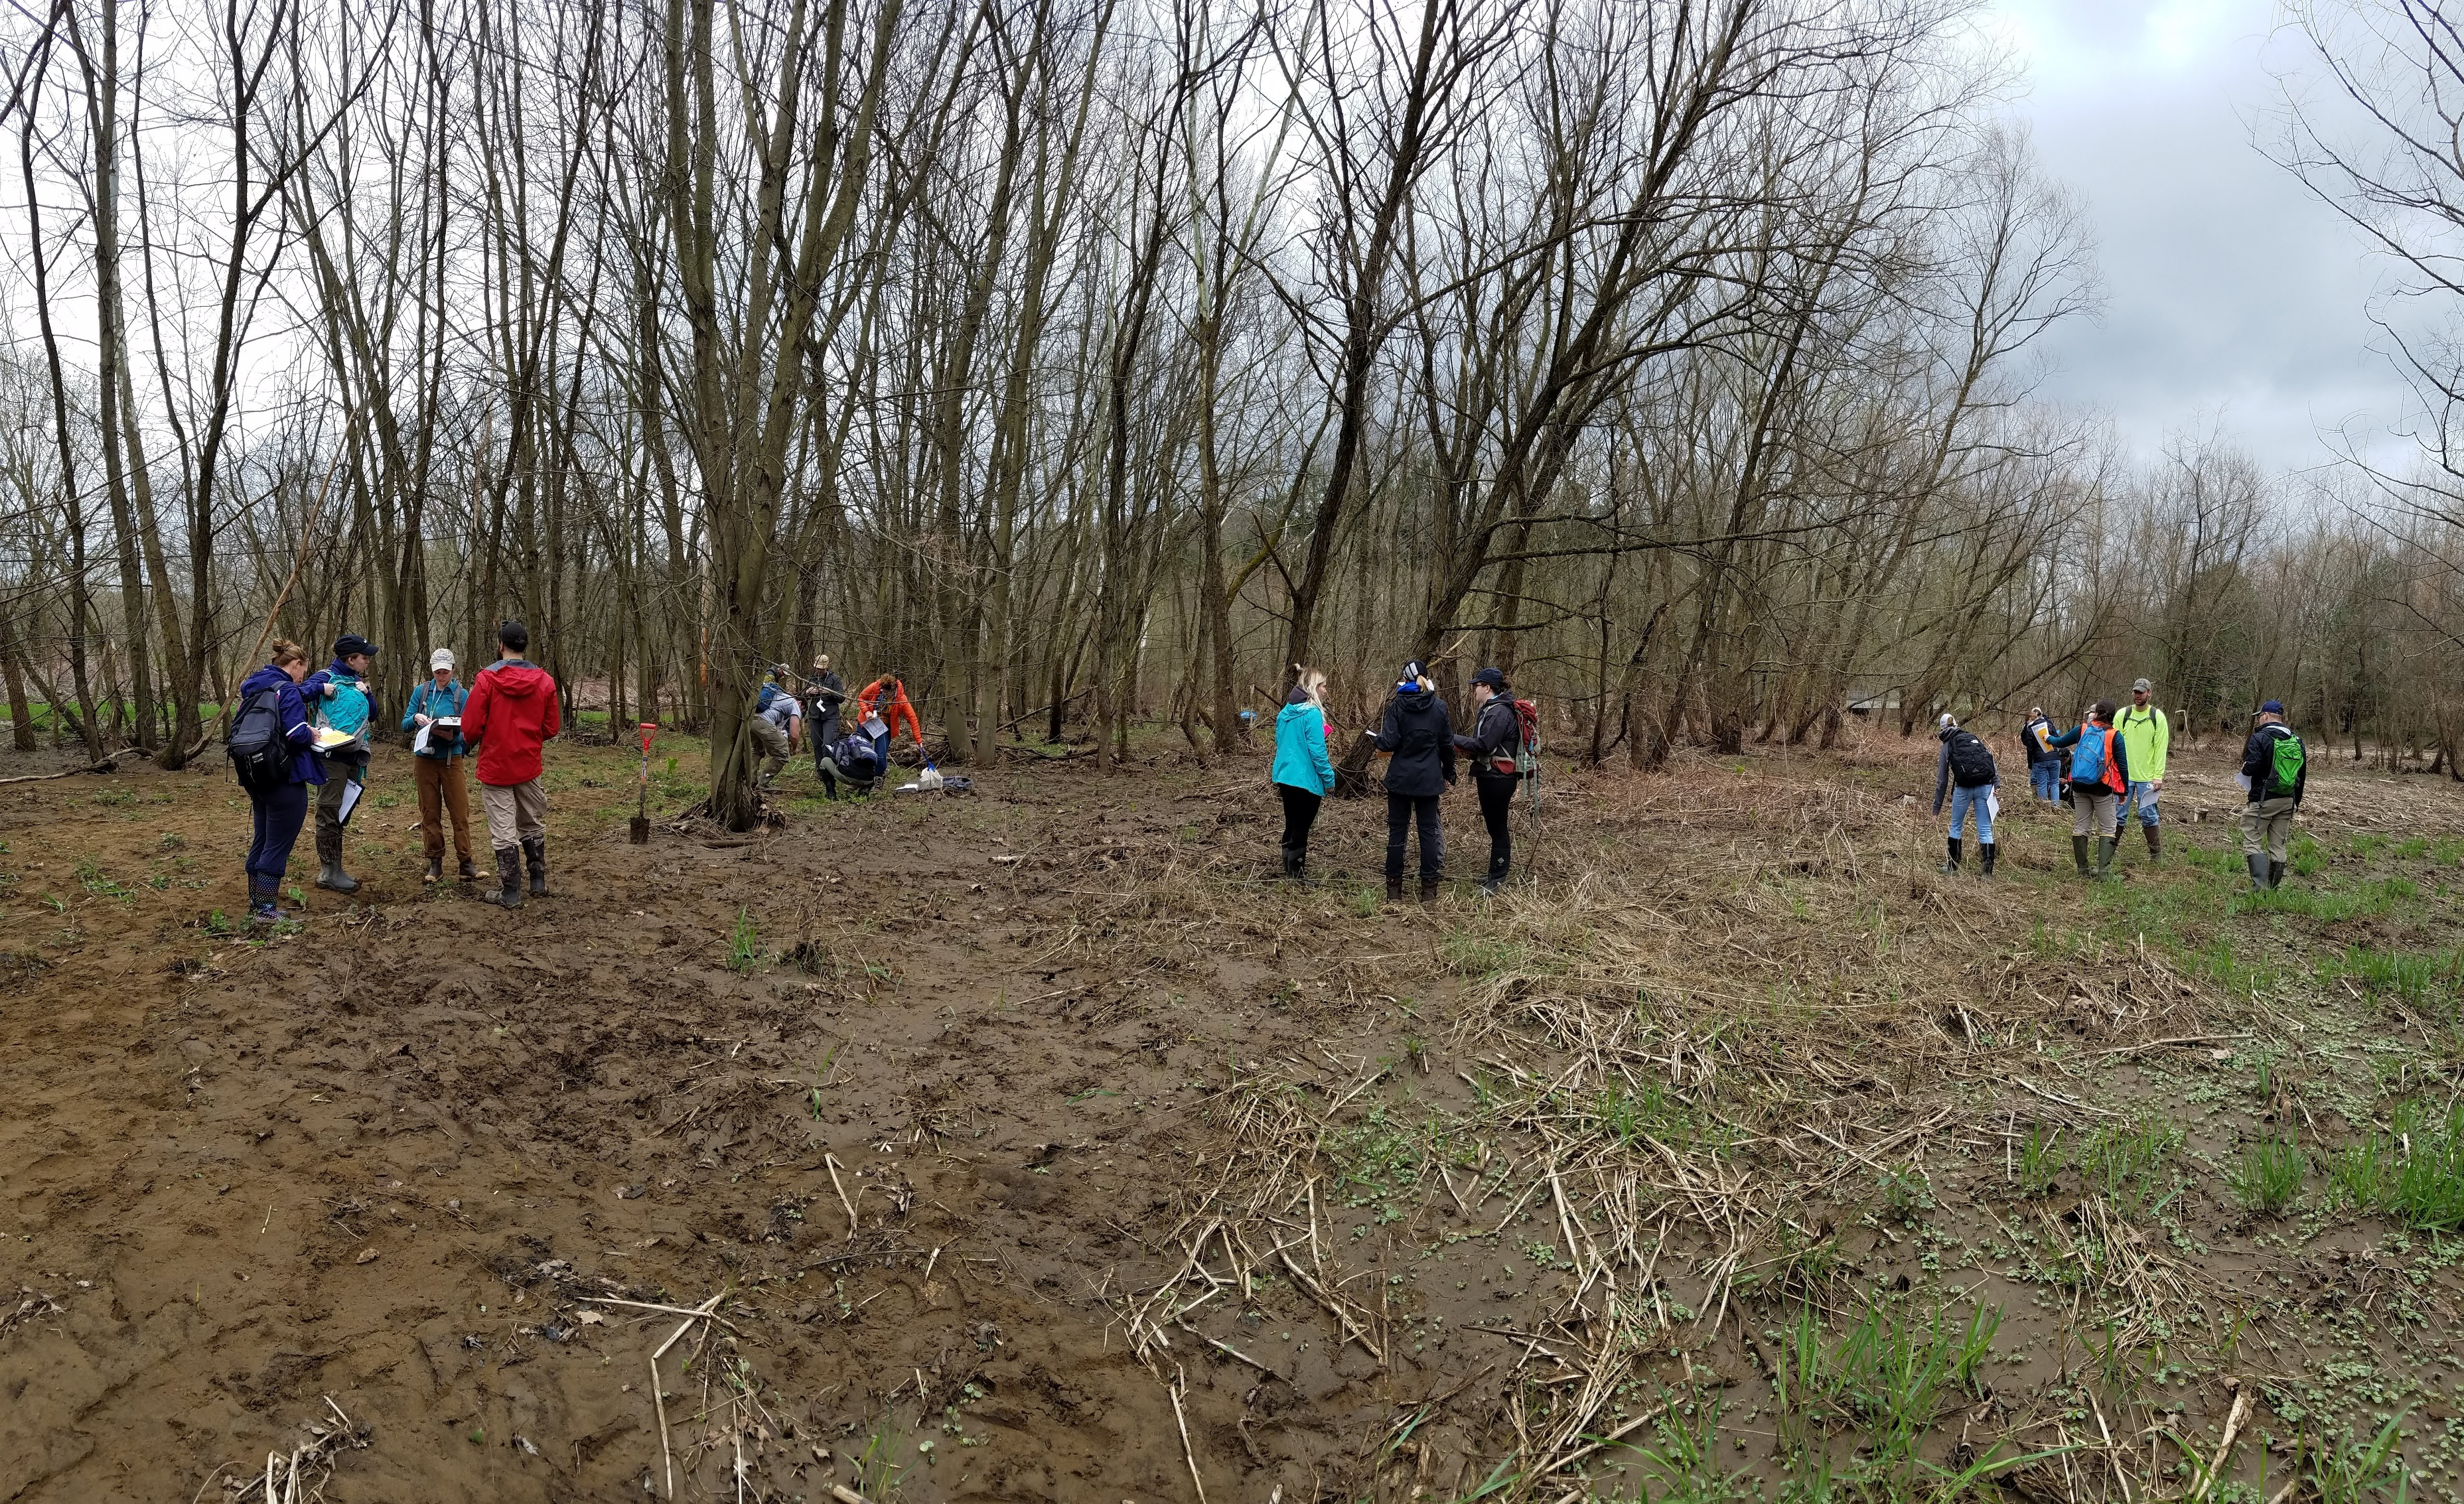 Five groups of four people taking notes are scattered throughout a muddy clearing with a stand of bare trees in the background.